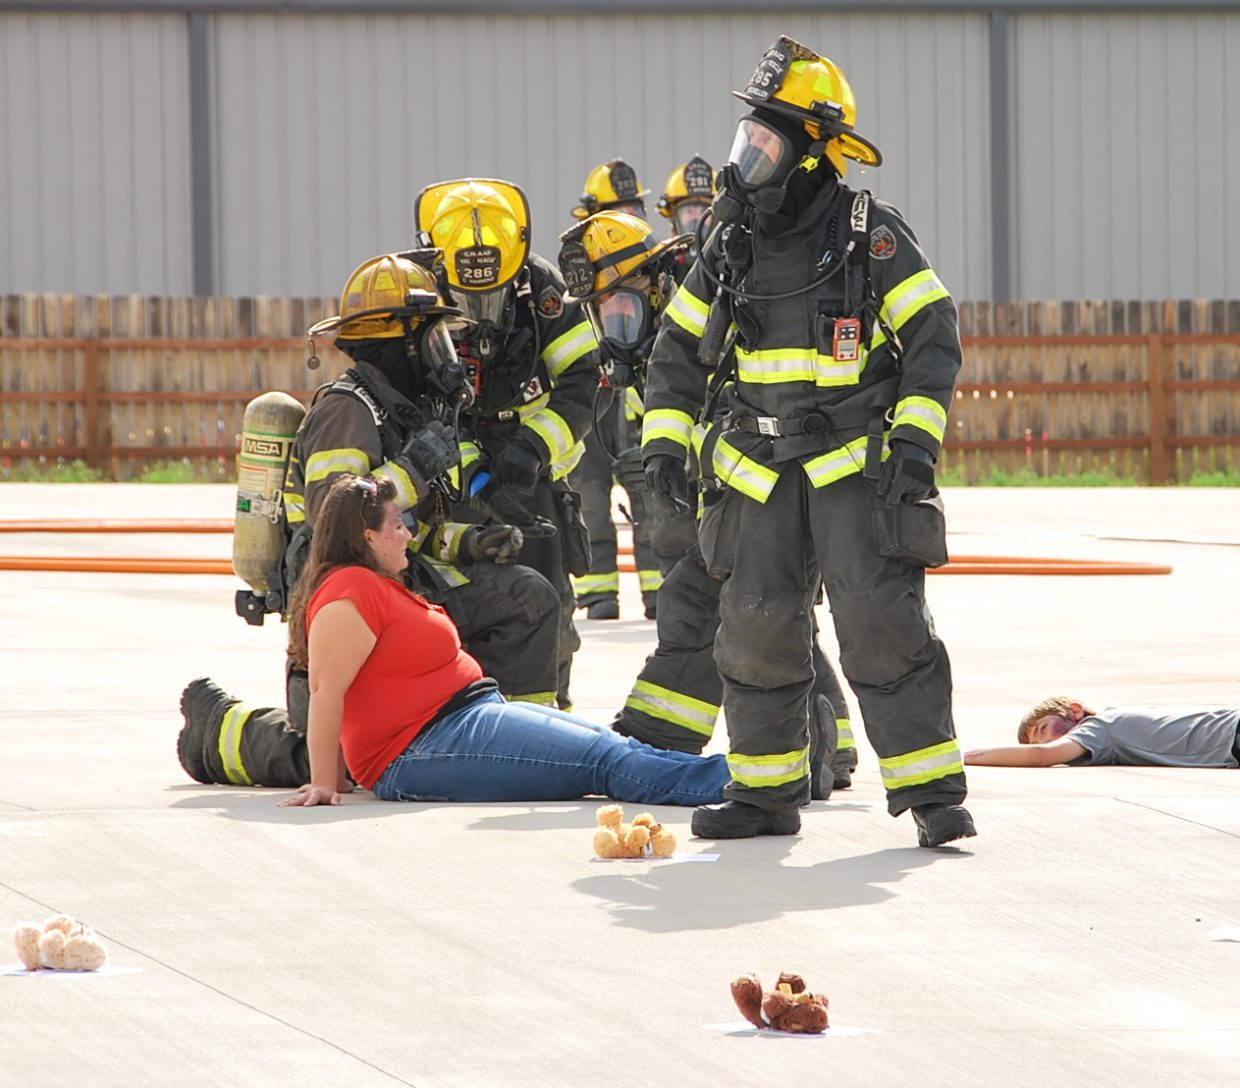 A Craig firefighter helps a volunteer victim during the training exercise.